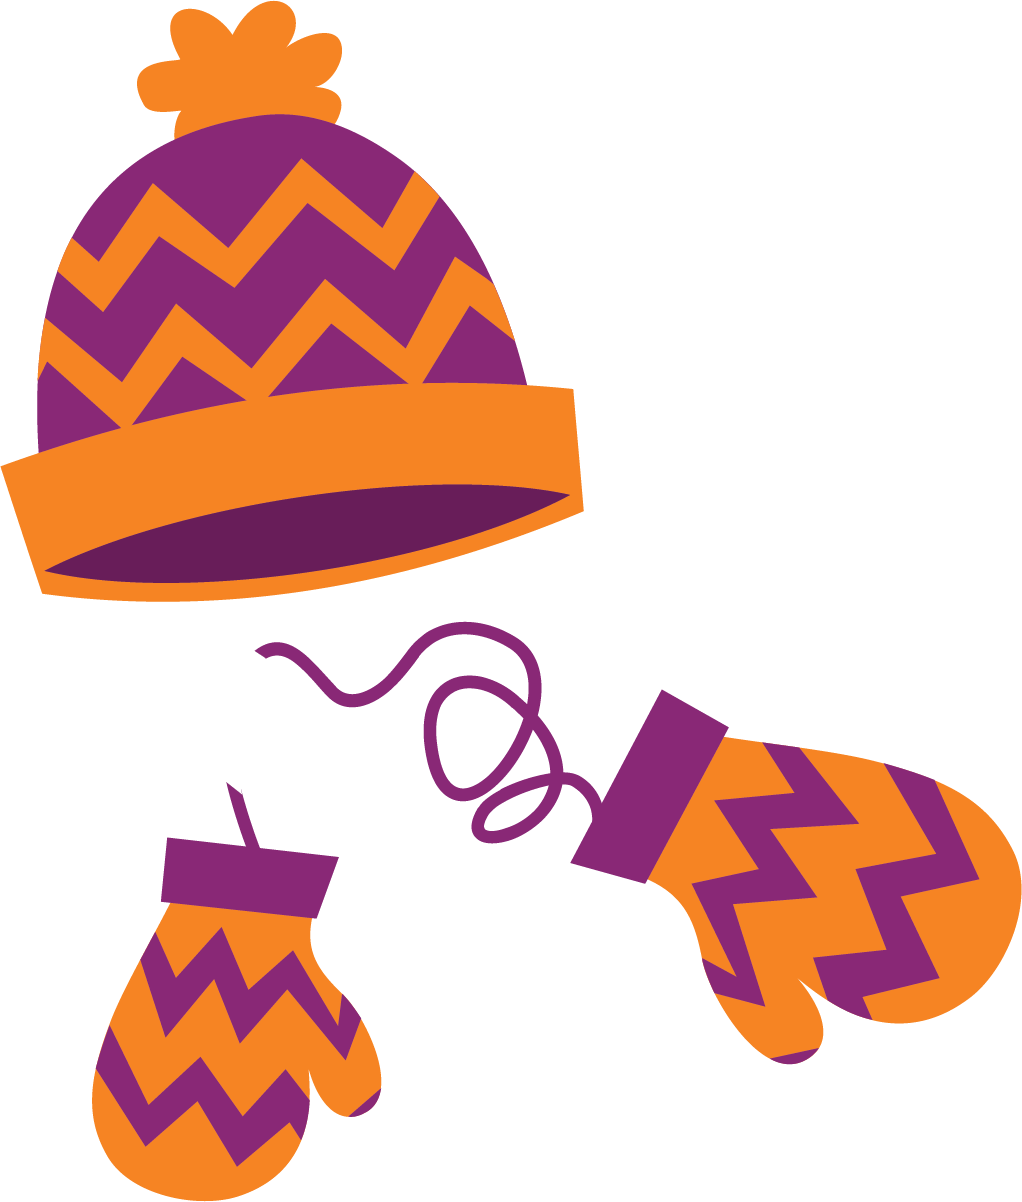 Winter hat and mittens clipart vector free Winter Hat And Gloves Clipart   Free download best Winter ... vector free